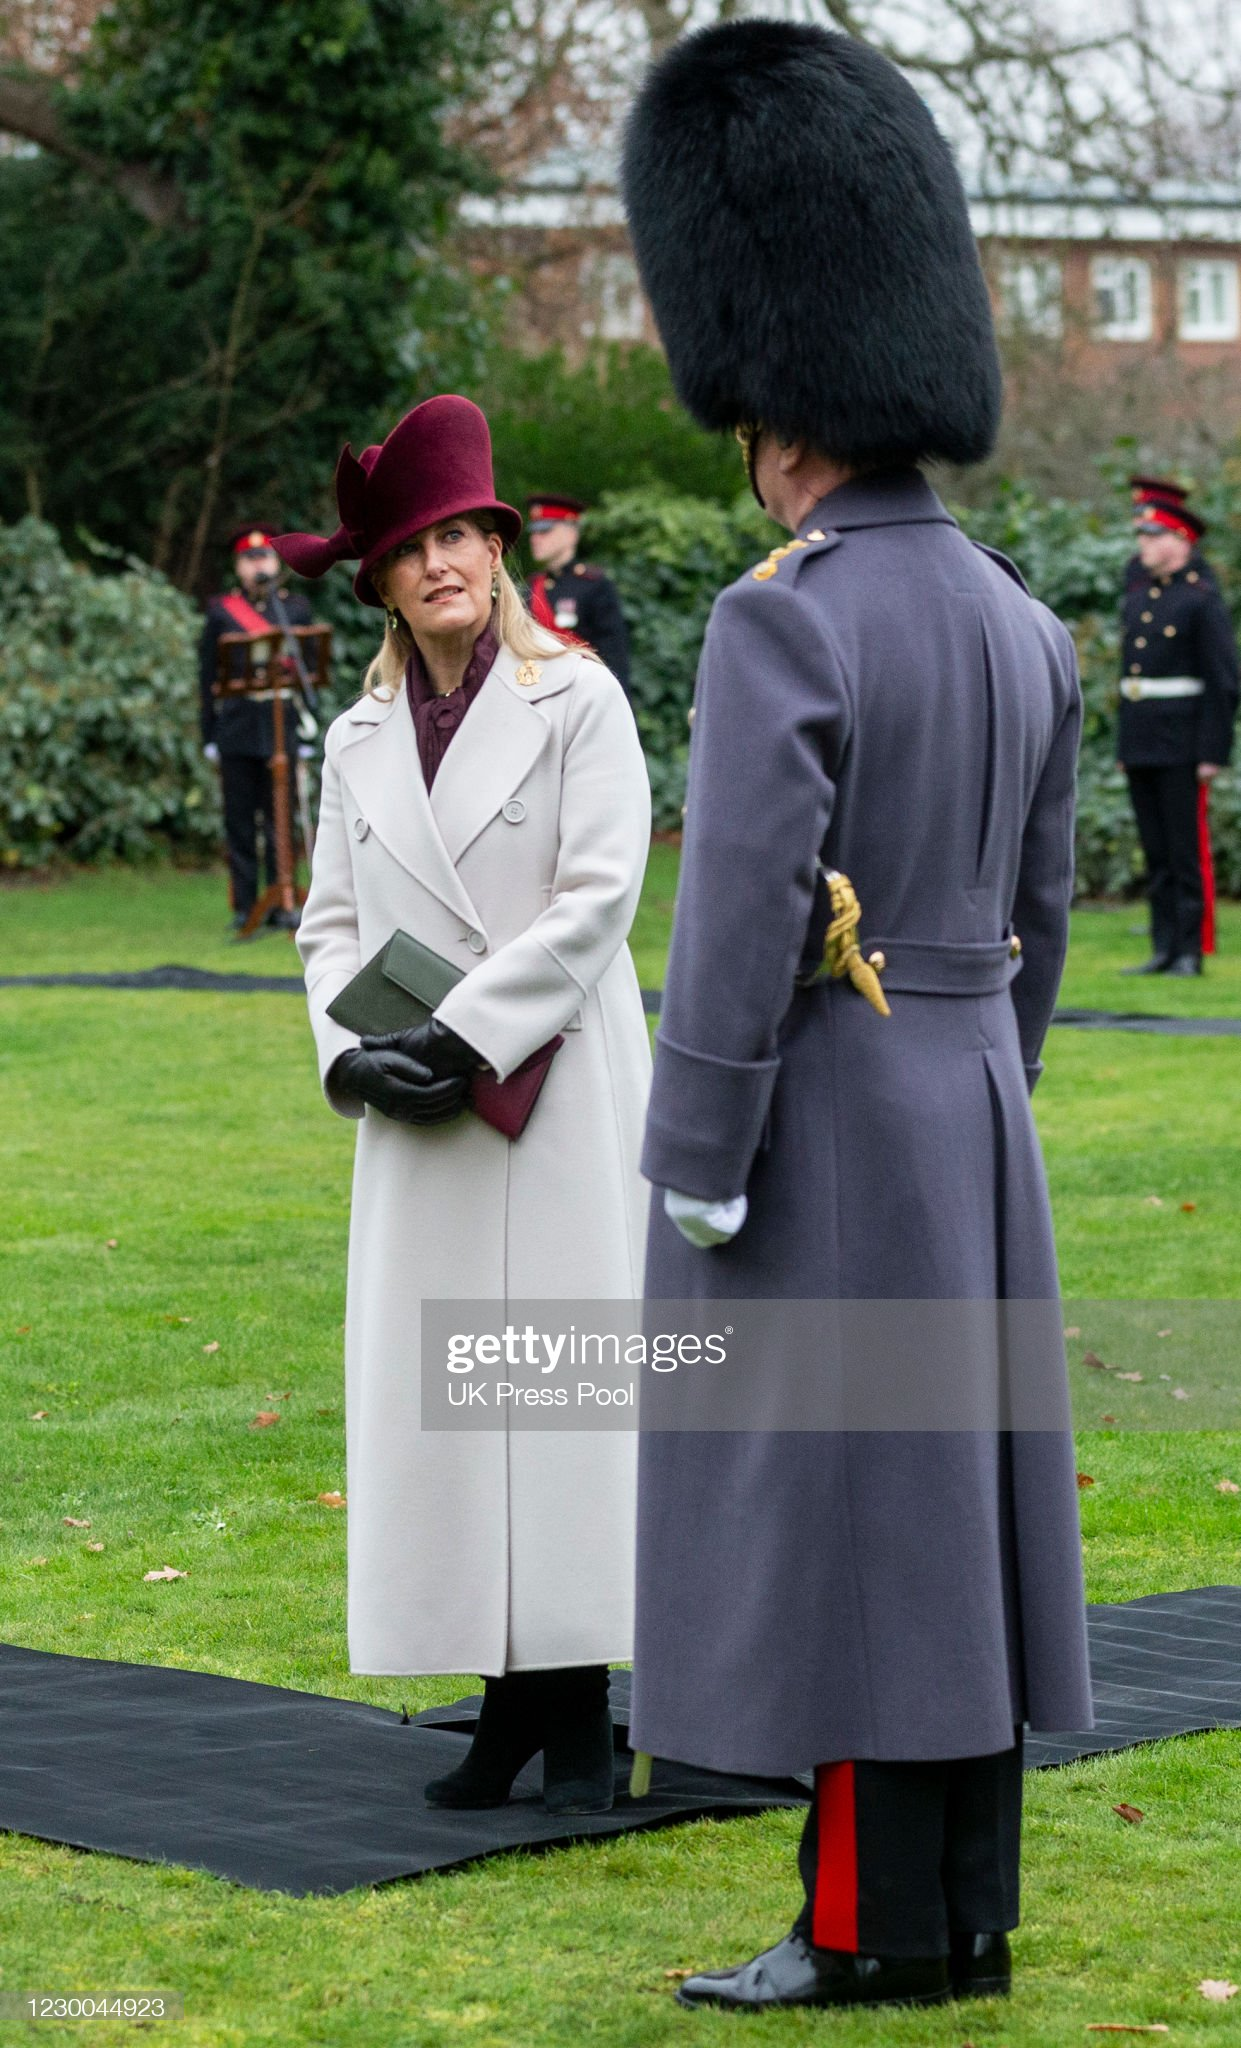 https://media.gettyimages.com/photos/sophie-countess-of-wessex-visits-the-corps-of-army-music-for-a-and-picture-id1230044923?s=2048x2048